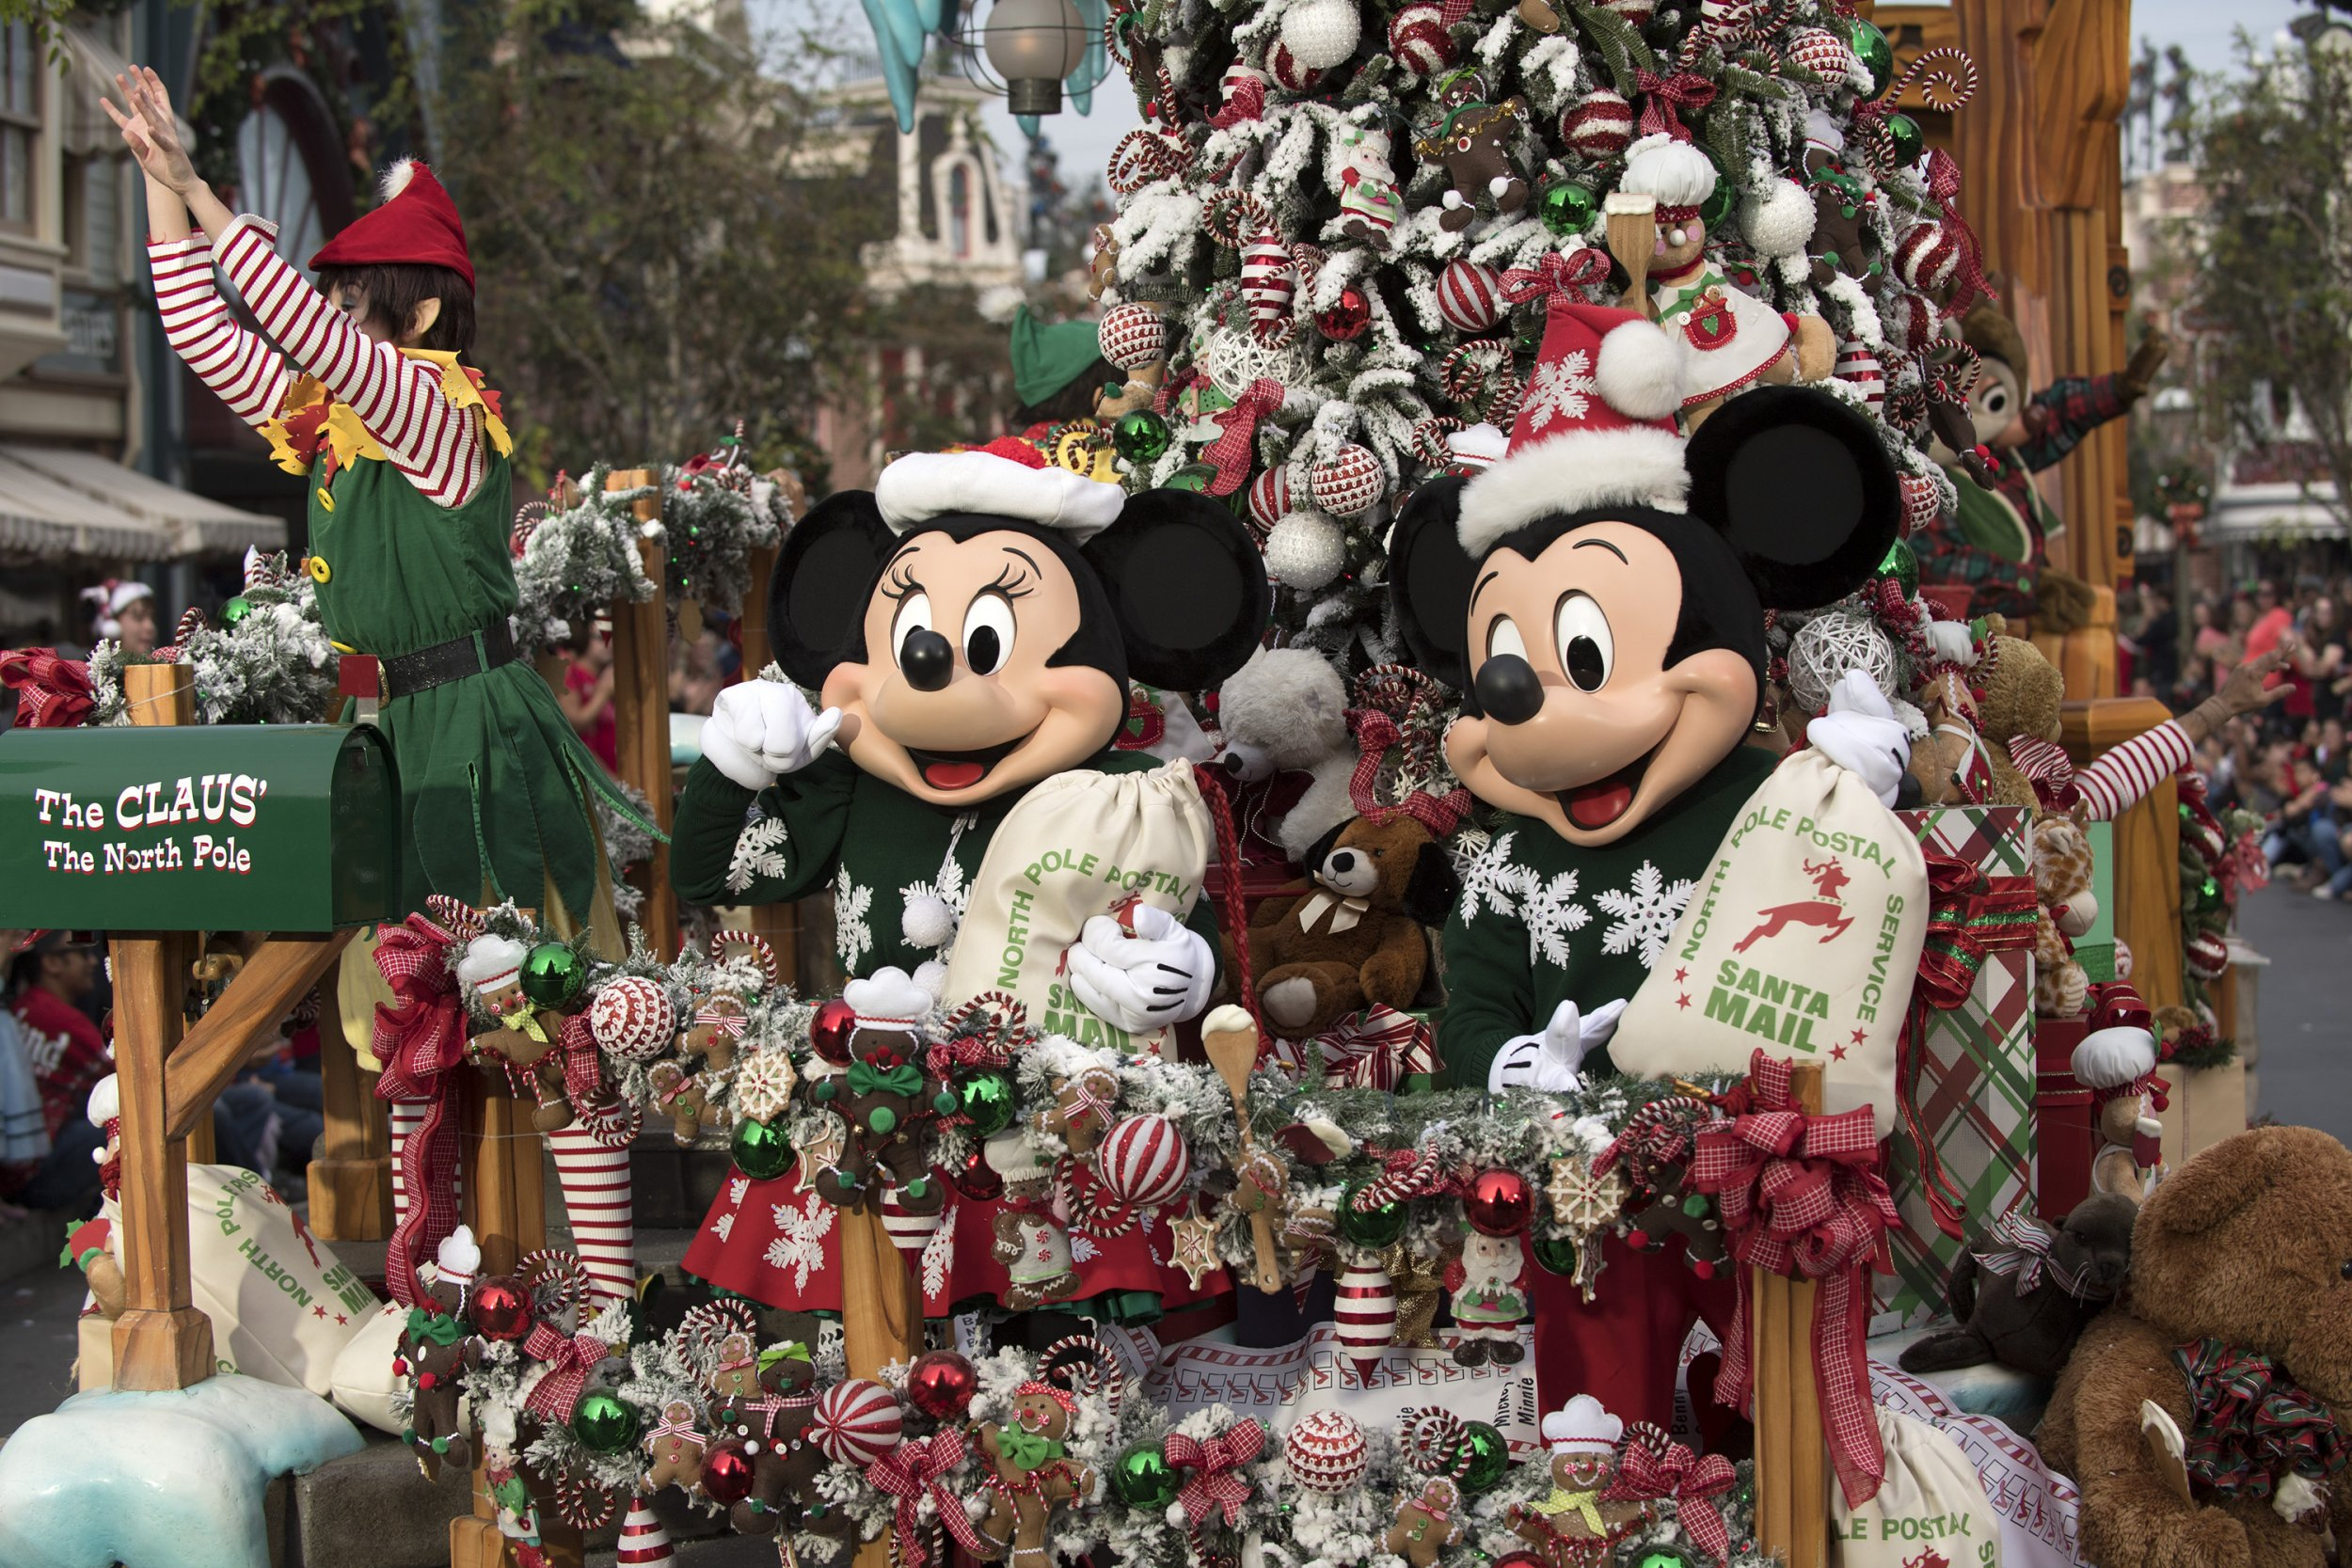 Disney Parks Magical Christmas Day Parade (ABC)